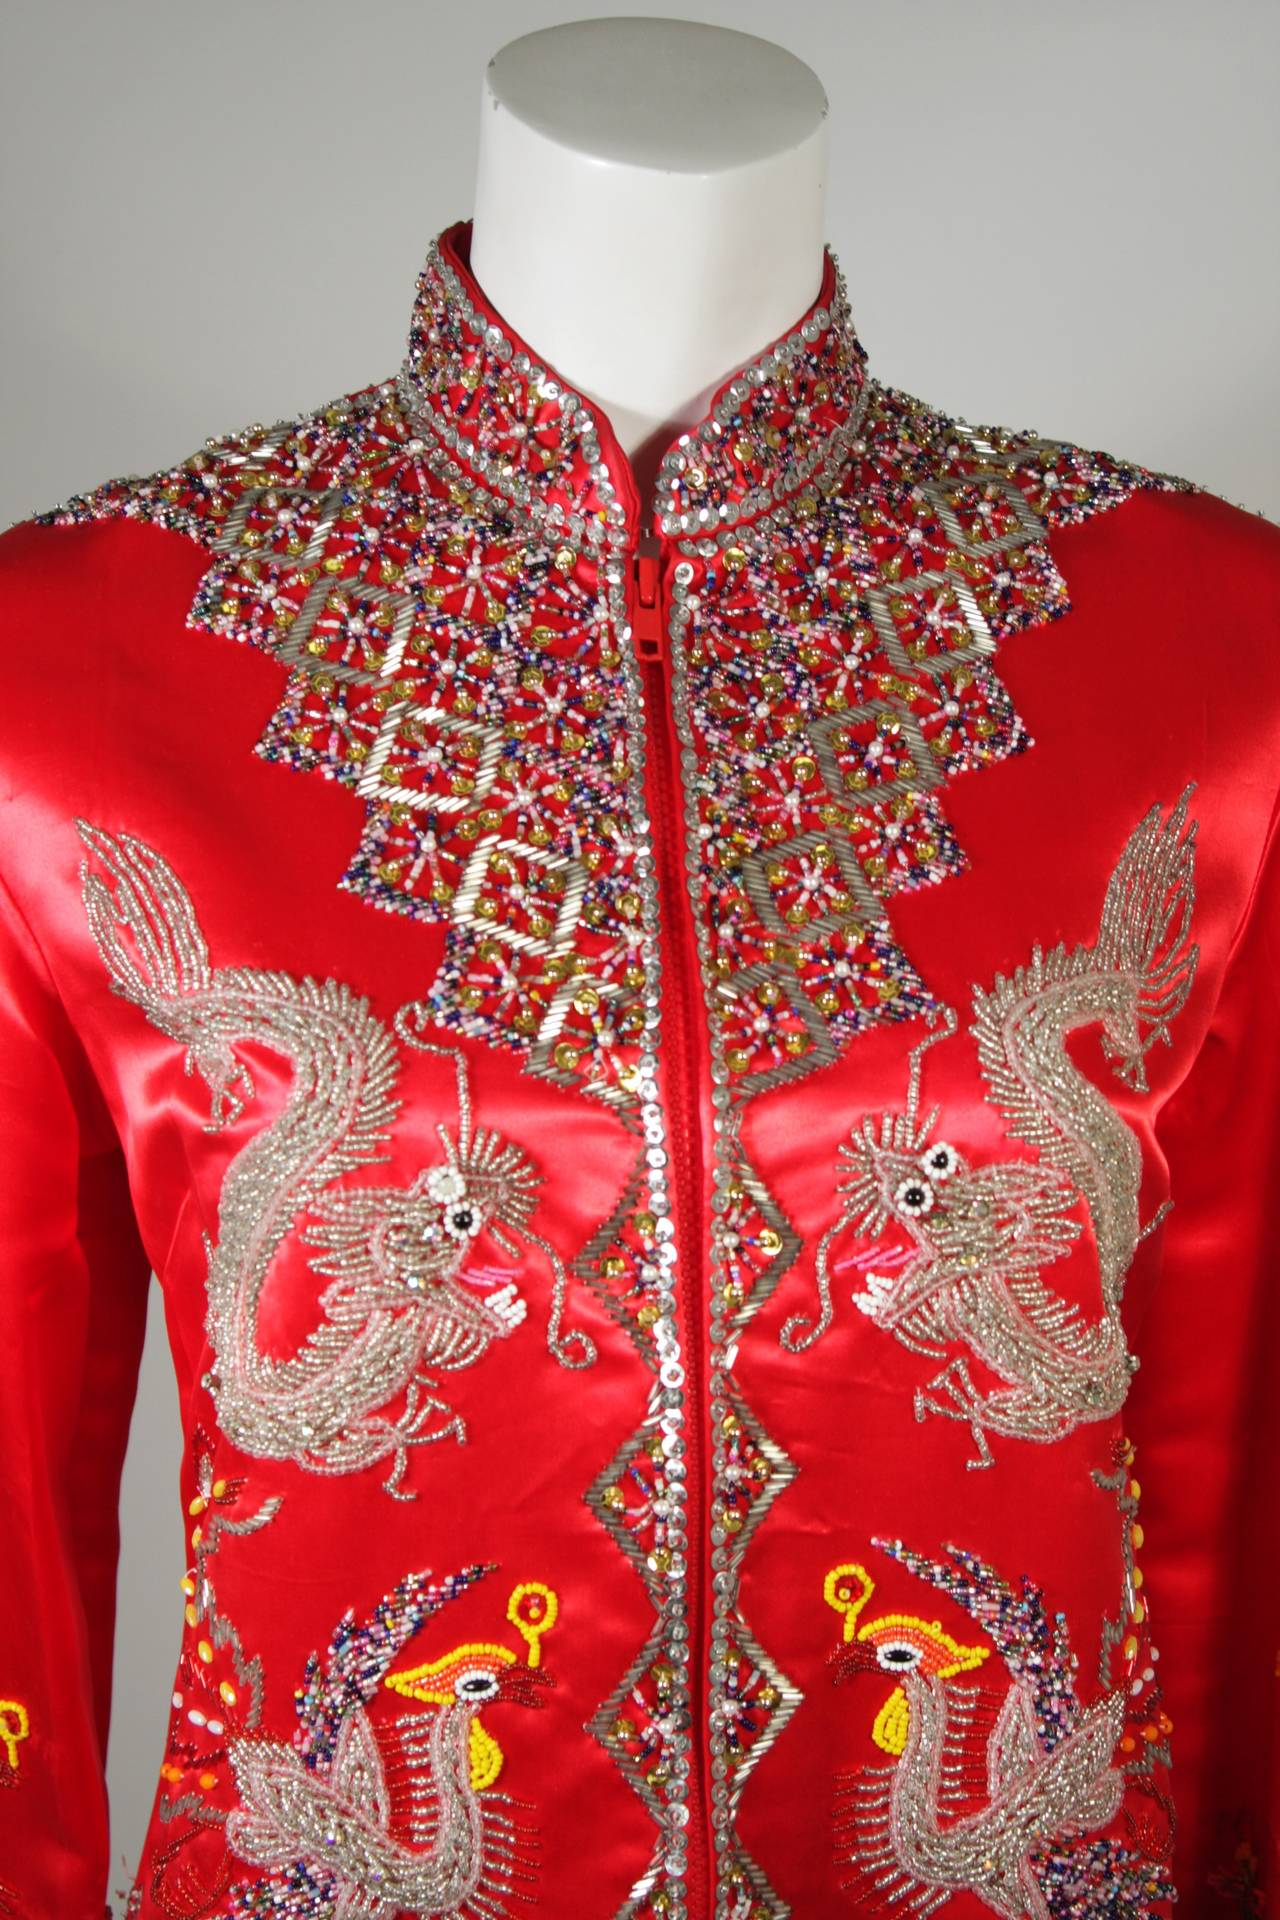 Dynasty For Neiman Marcus Red Silk Hand Beaded Sequined Dragon & Phoenix Jacket For Sale 1